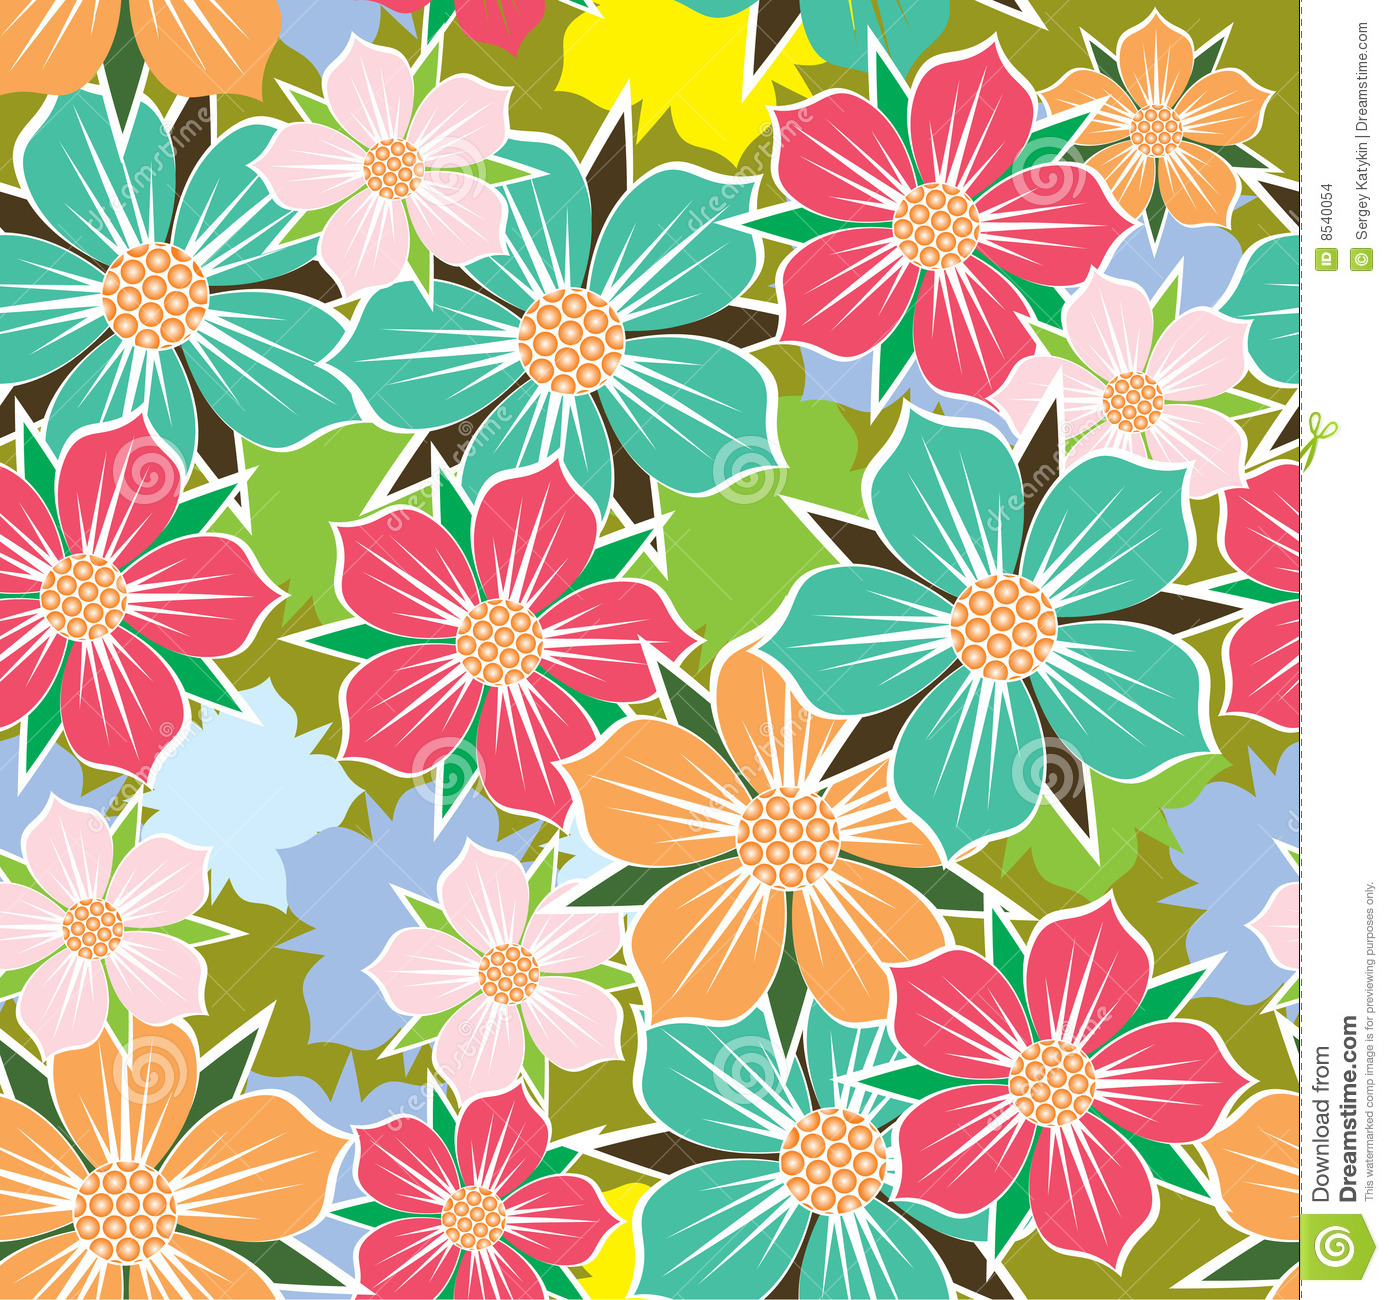 Abstract Flower Patterns Patterns Kid